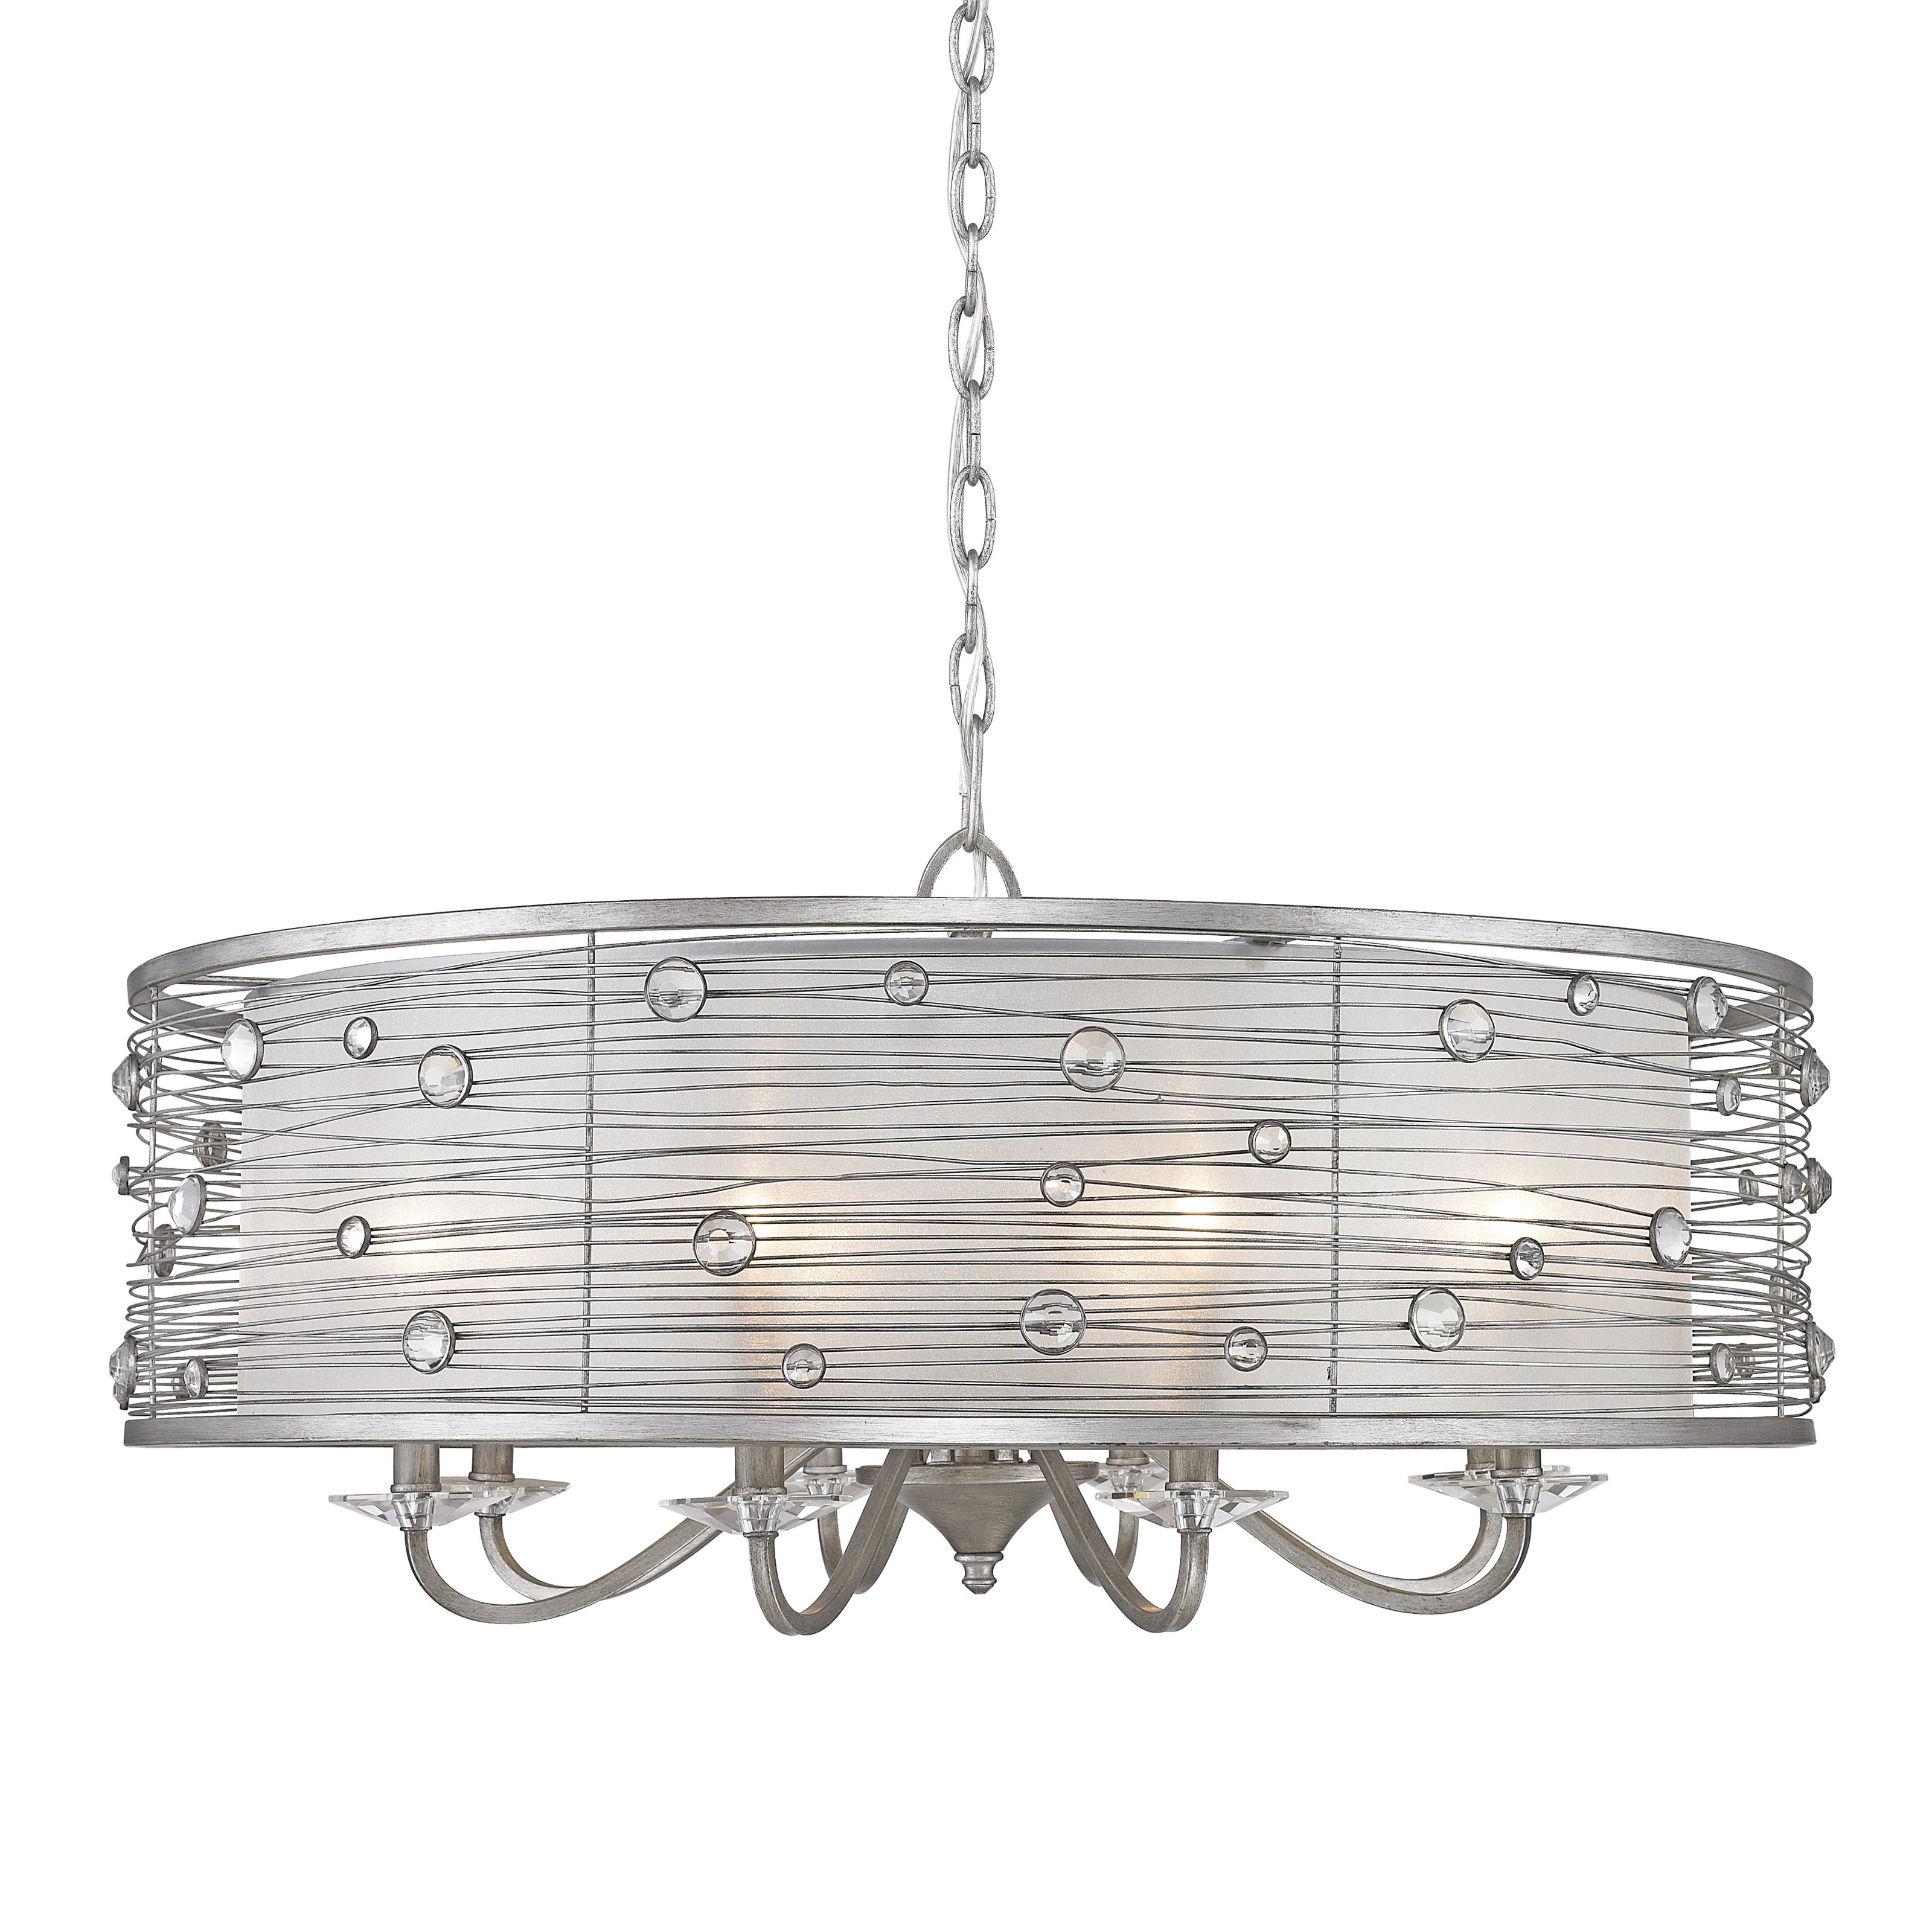 Hermione 8 Light Drum Chandelier Intended For Abel 5 Light Drum Chandeliers (Image 17 of 30)